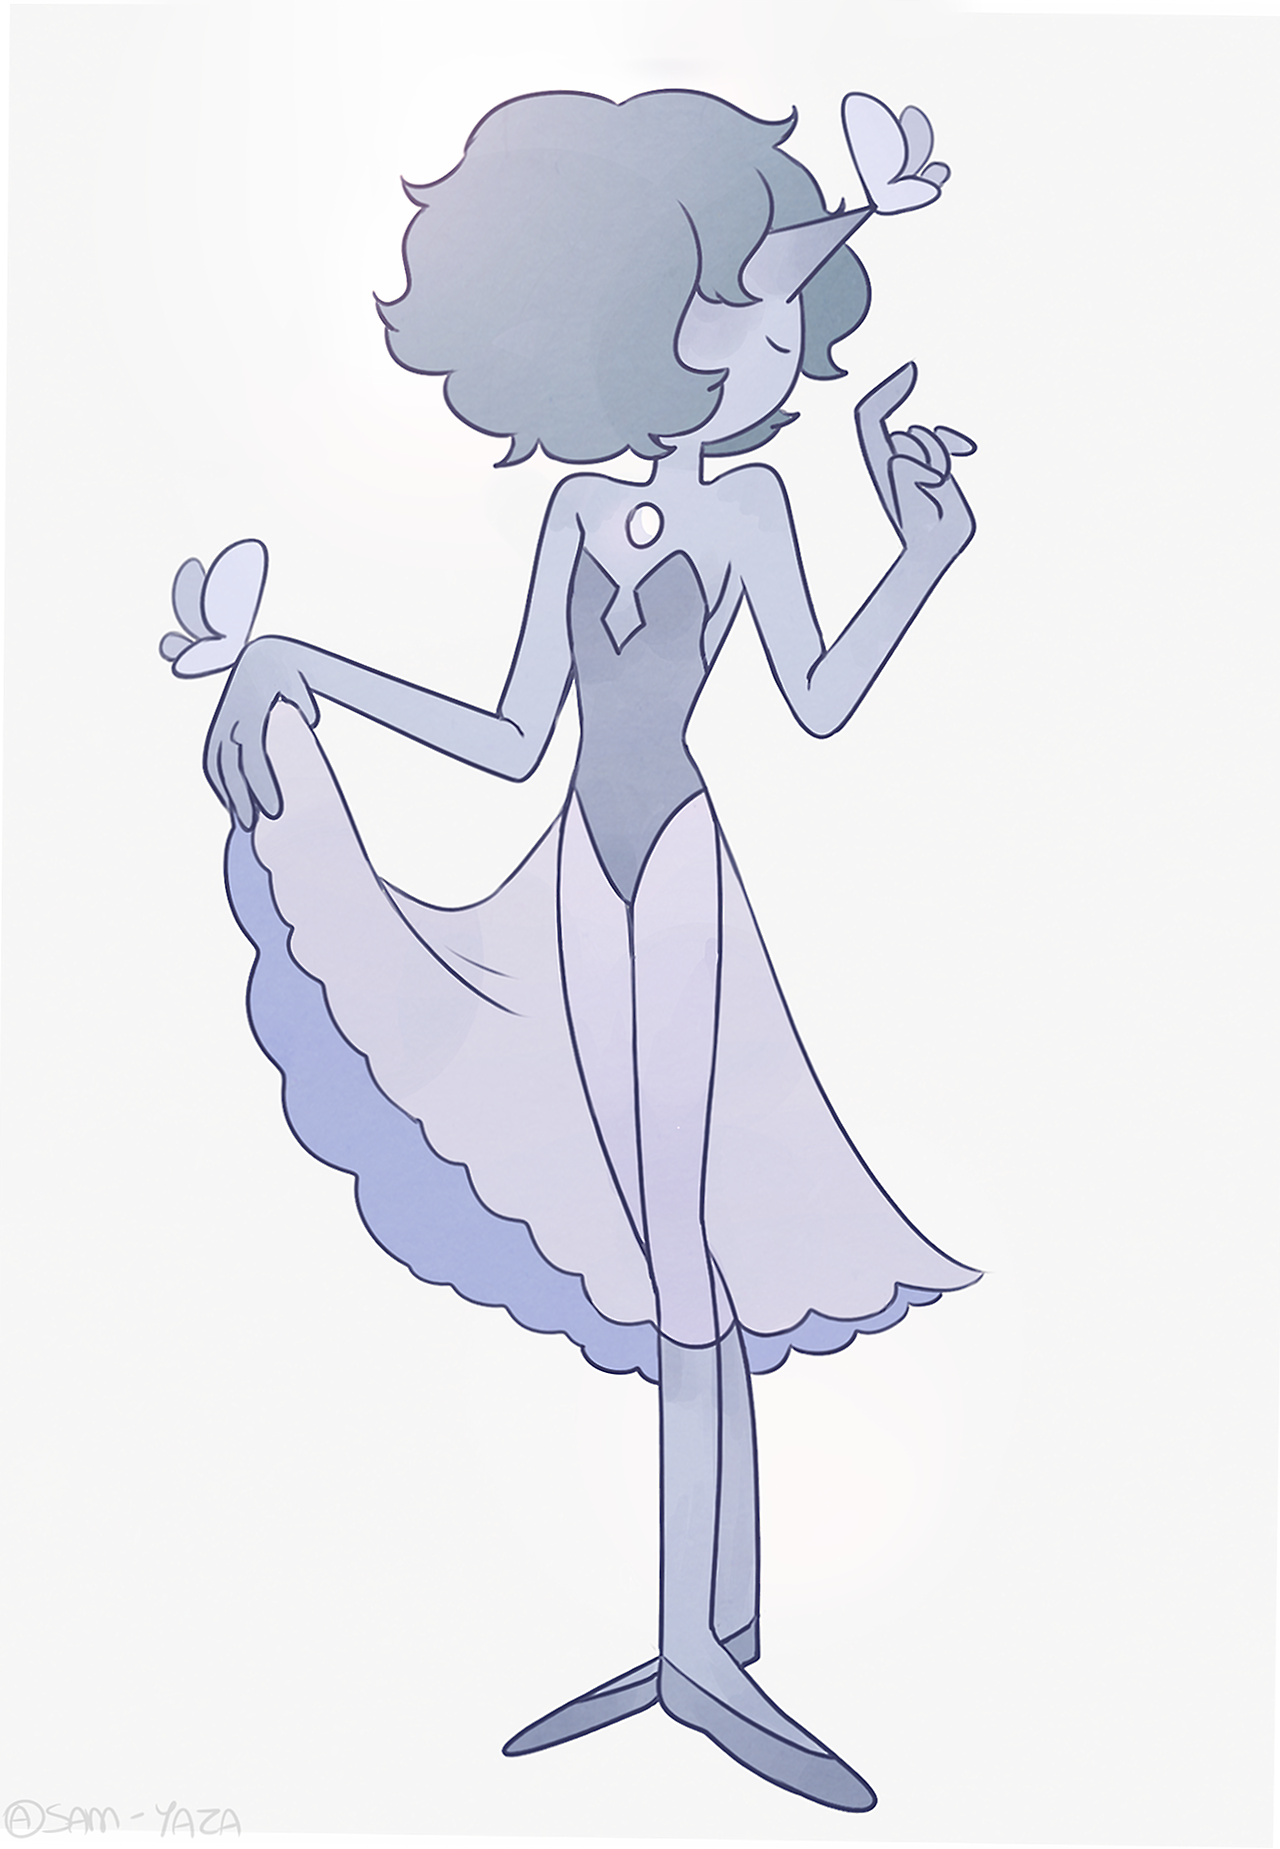 Another Blue pearl doodle!